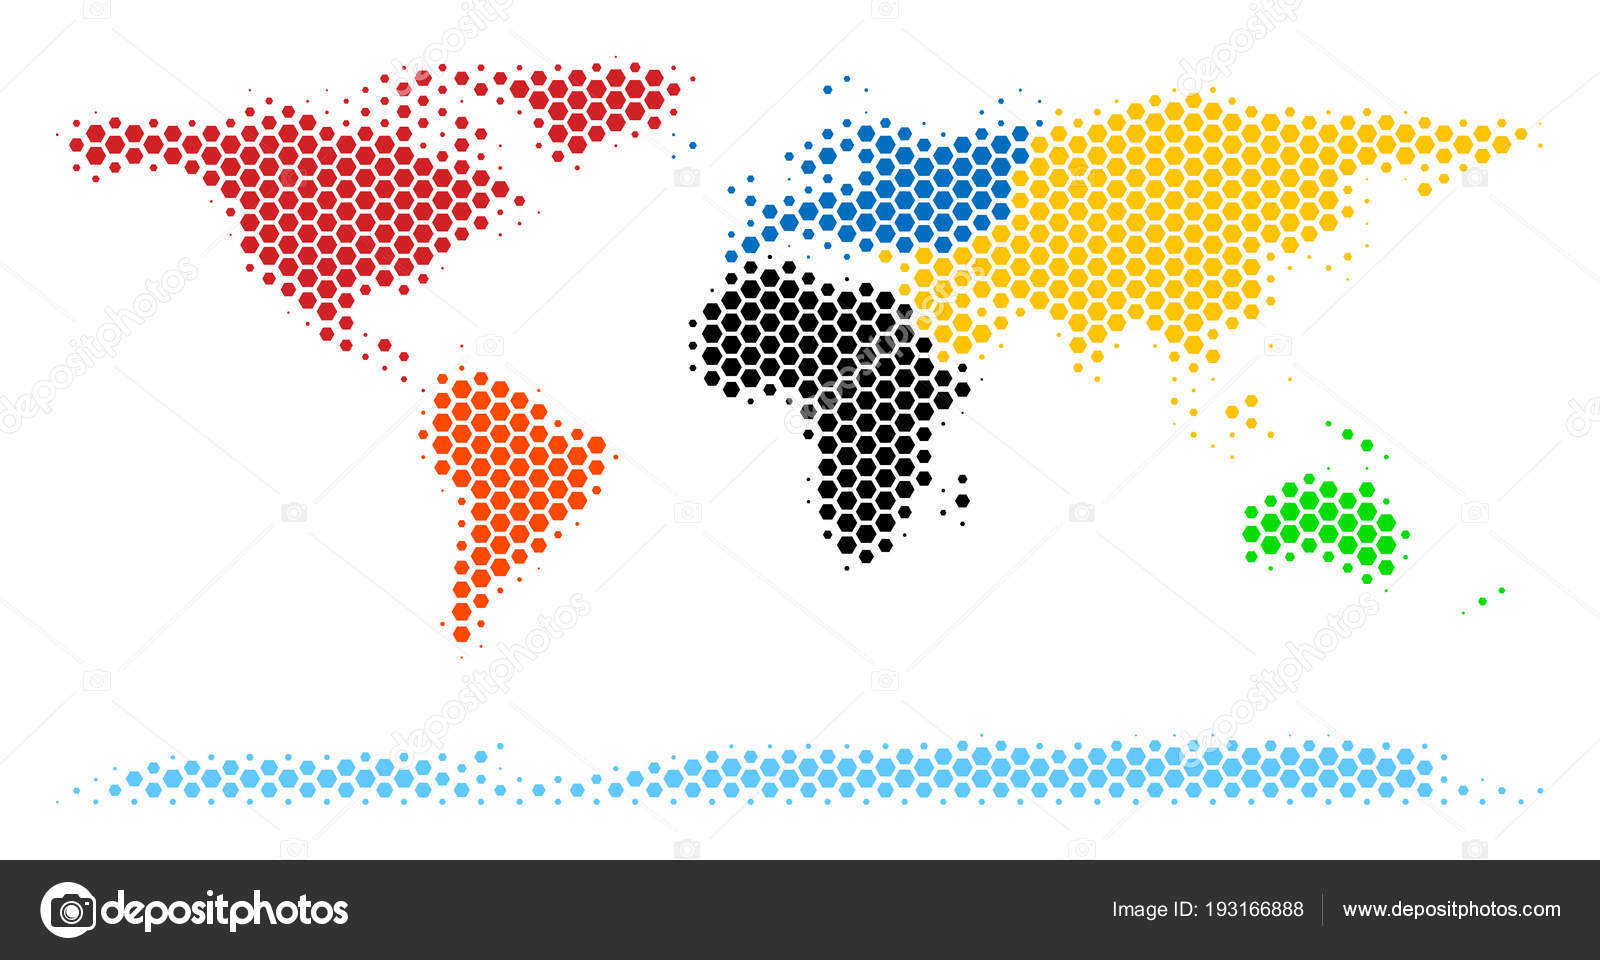 Hexagon halftone world continent map stock vector ahasoft 193166888 halftone hexagon world continent map vector geographic map on a white background vector mosaic of world continent map designed of hexagonal blots gumiabroncs Gallery